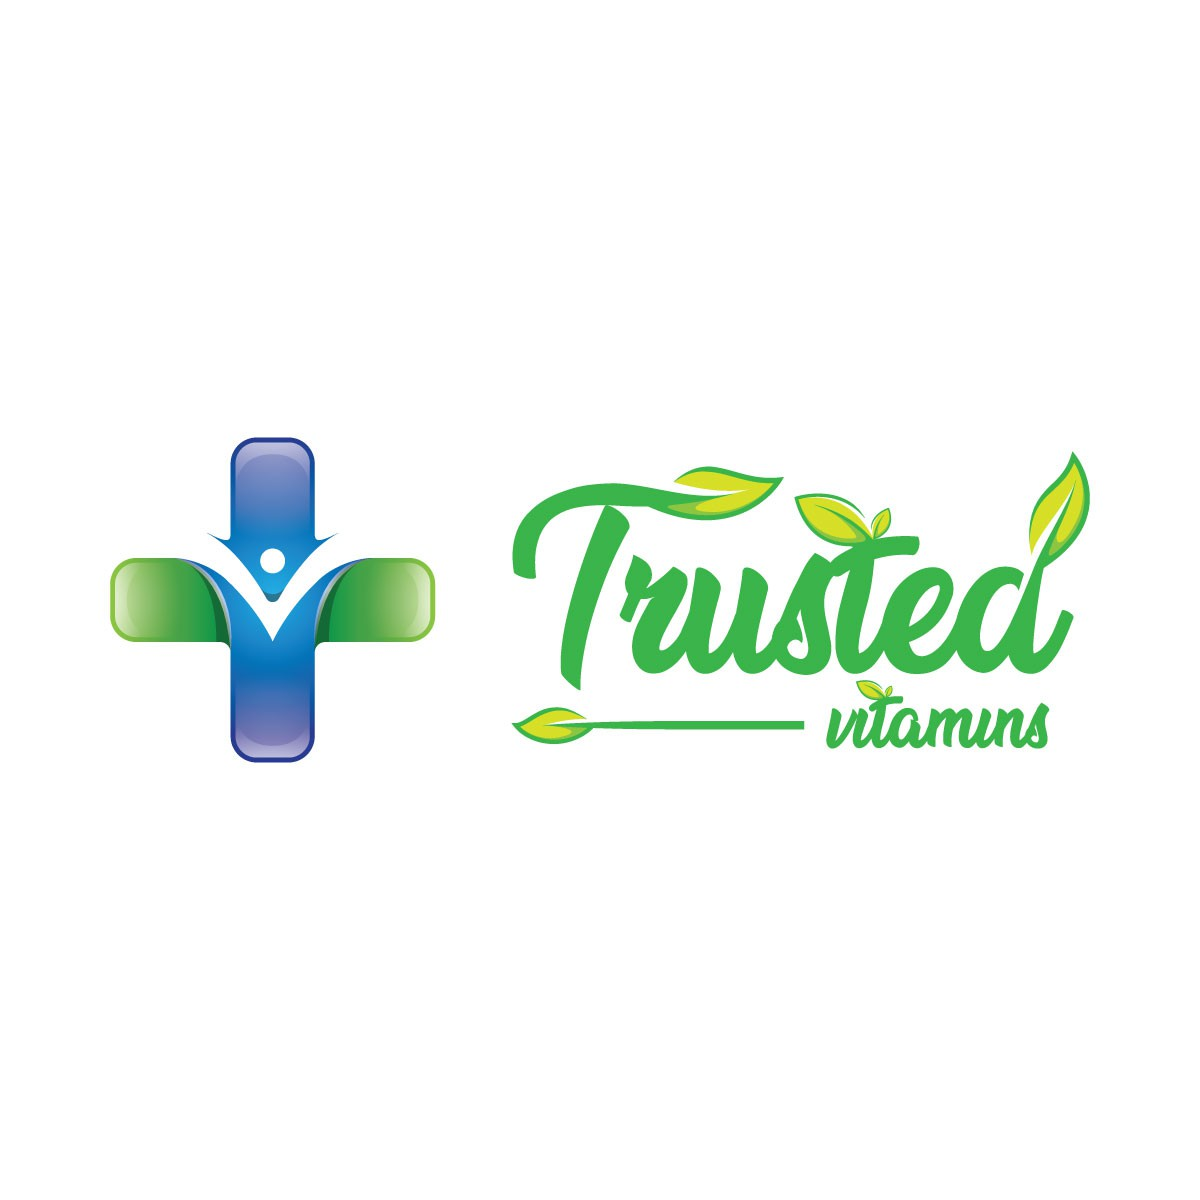 Design logo for Trusted vitamins